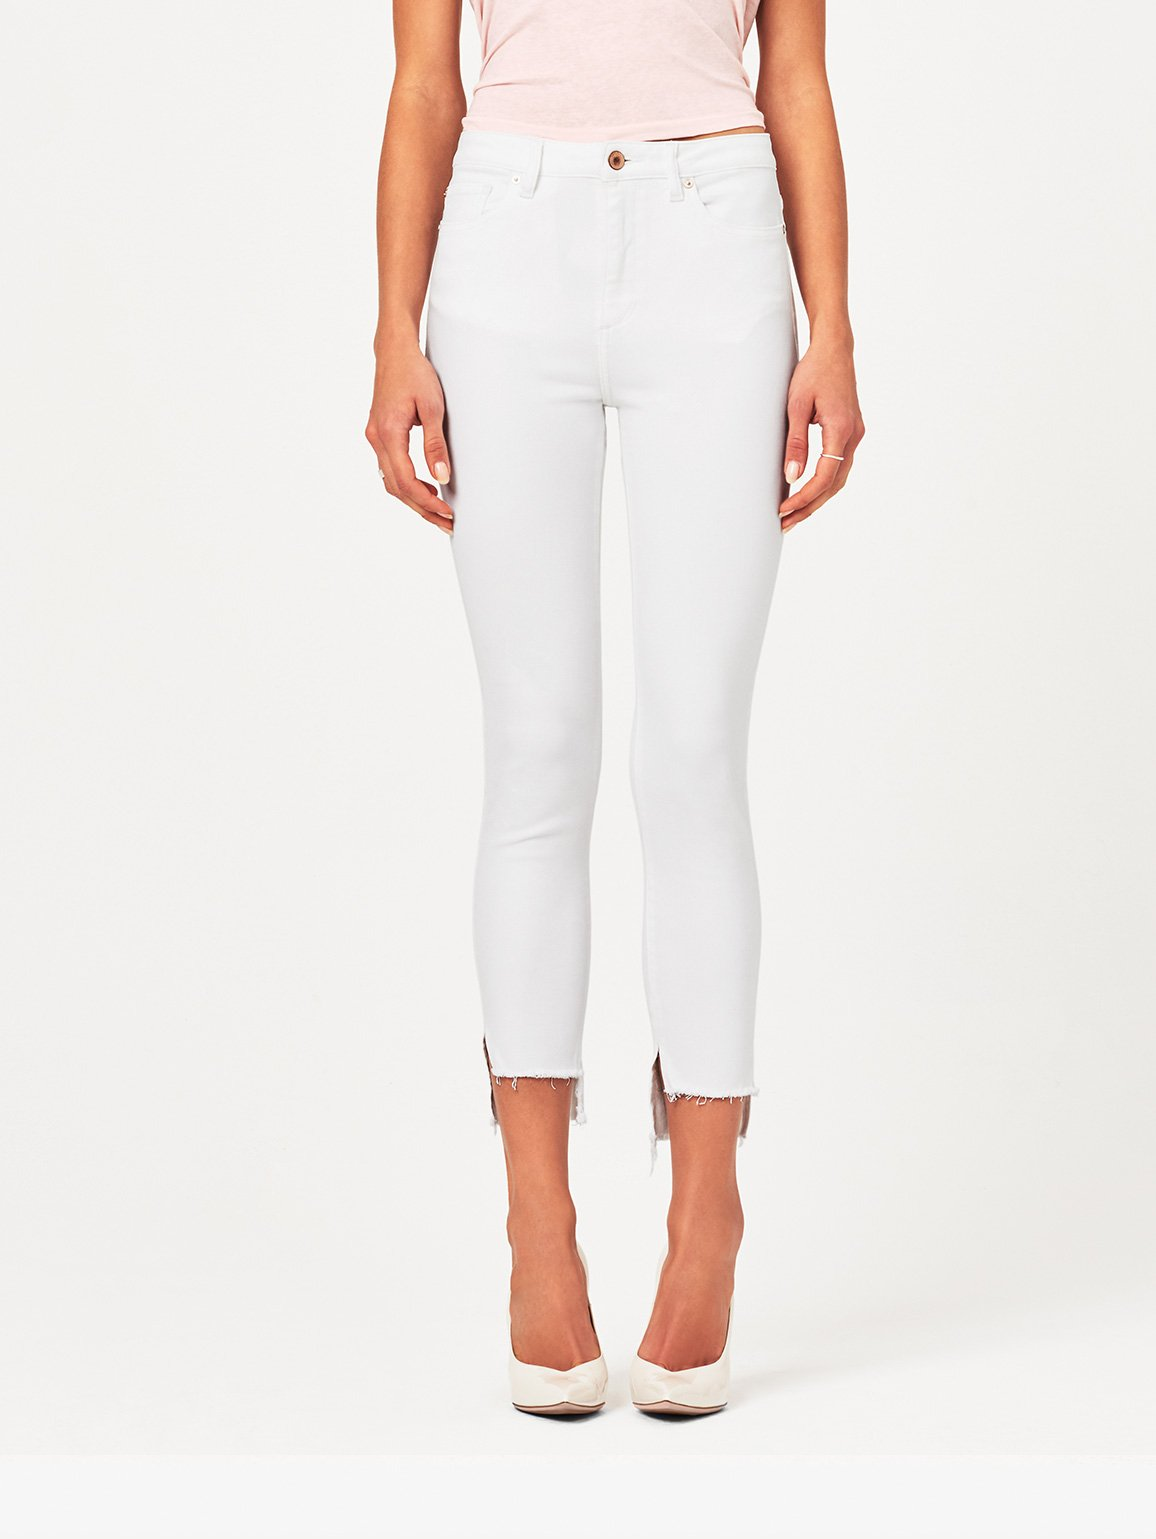 Chrissy Ultra High Rise Skinny | Walsh DL 1961 Denim